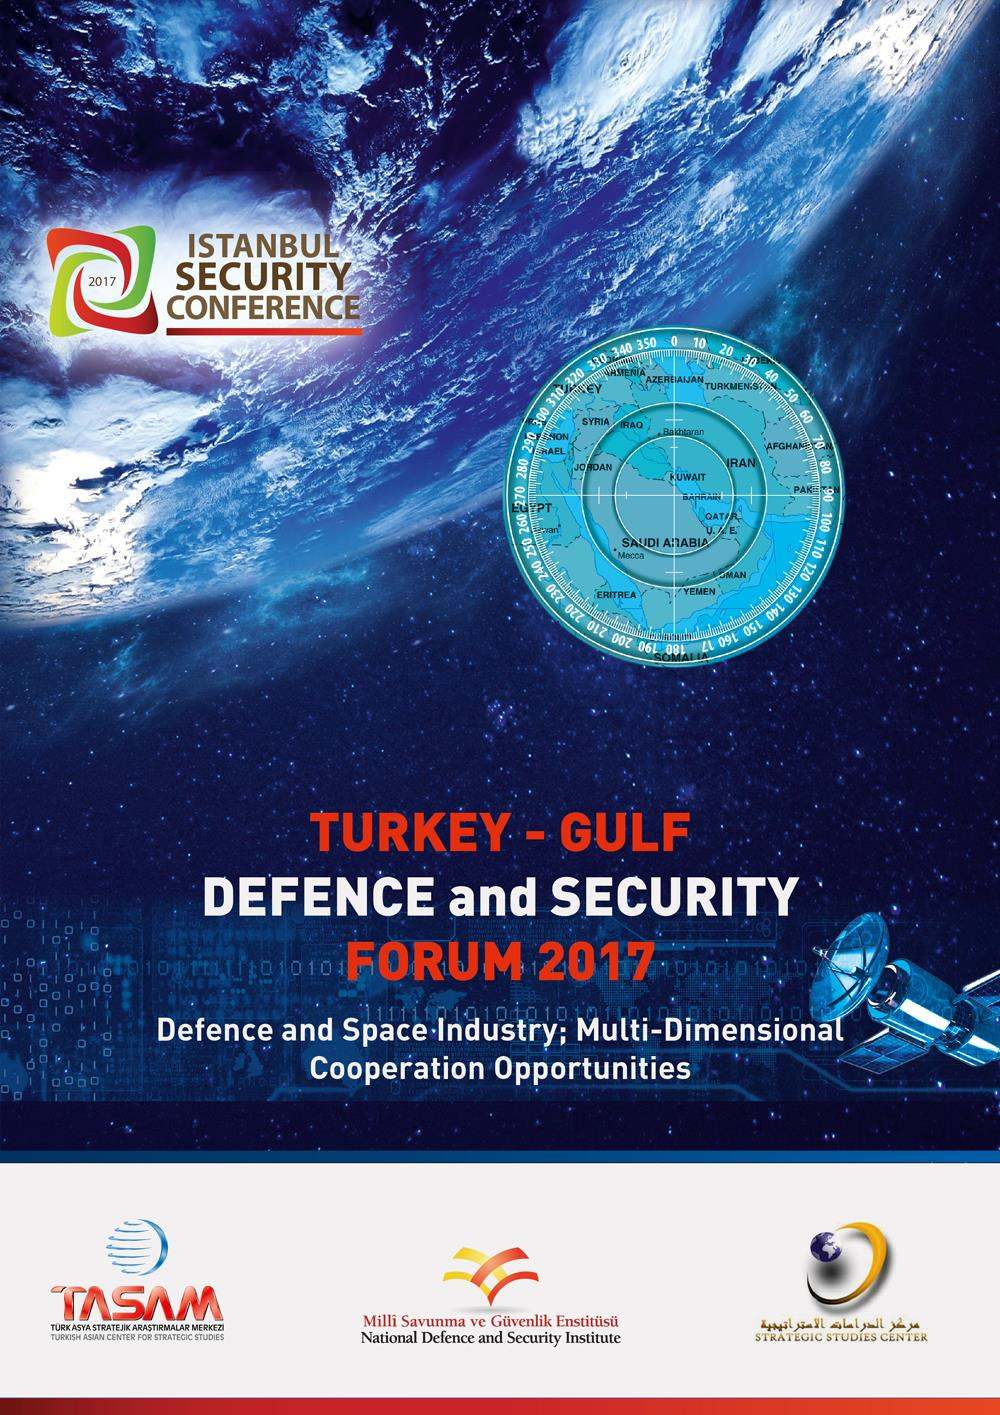 Turkey - Gulf Defence and Security Forum Preparation Meeting